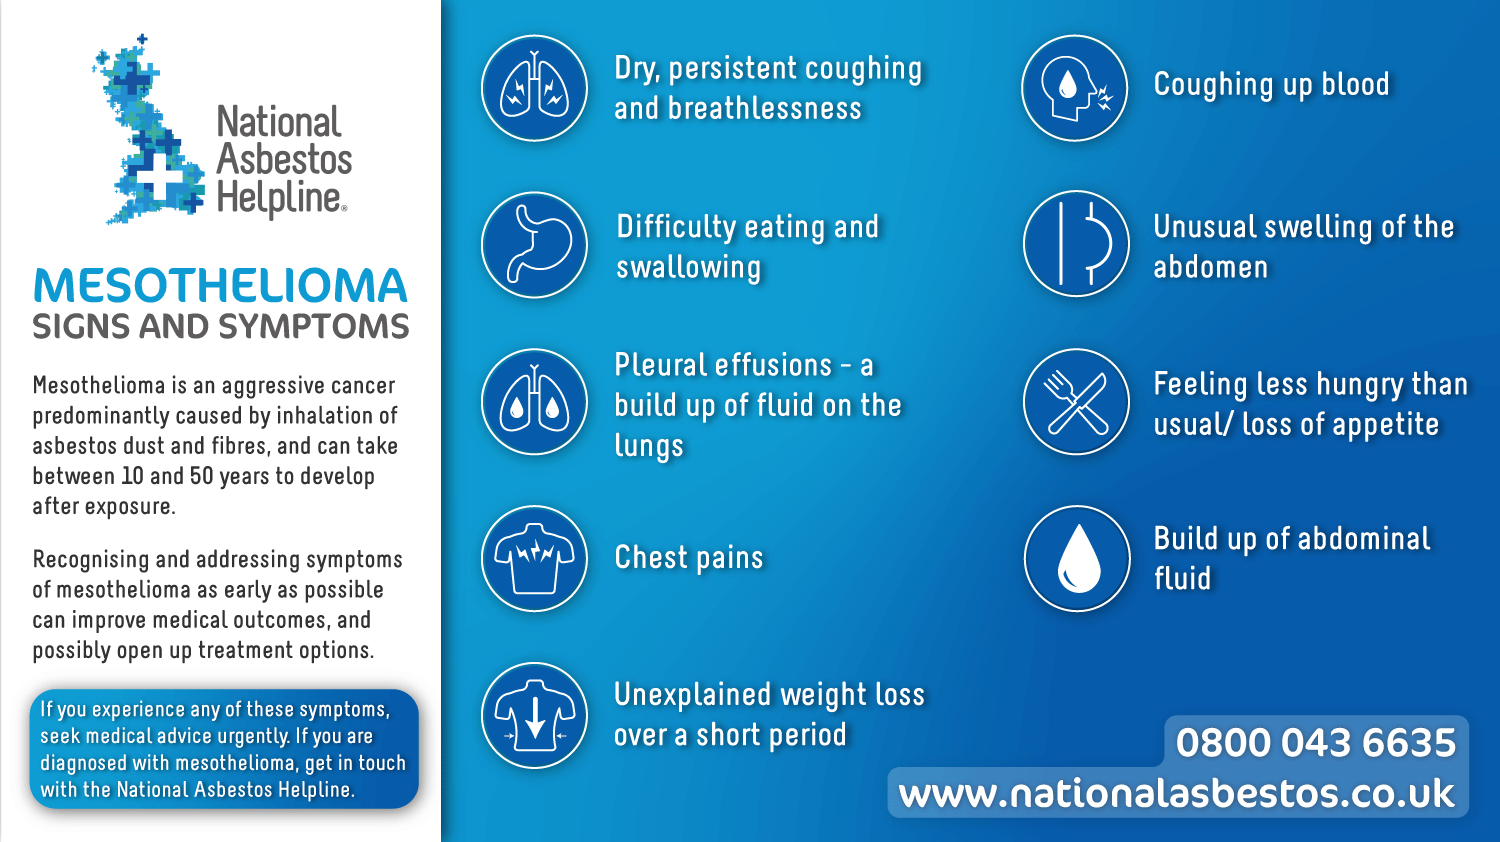 Signs and symptoms of mesothelioma - Infographic